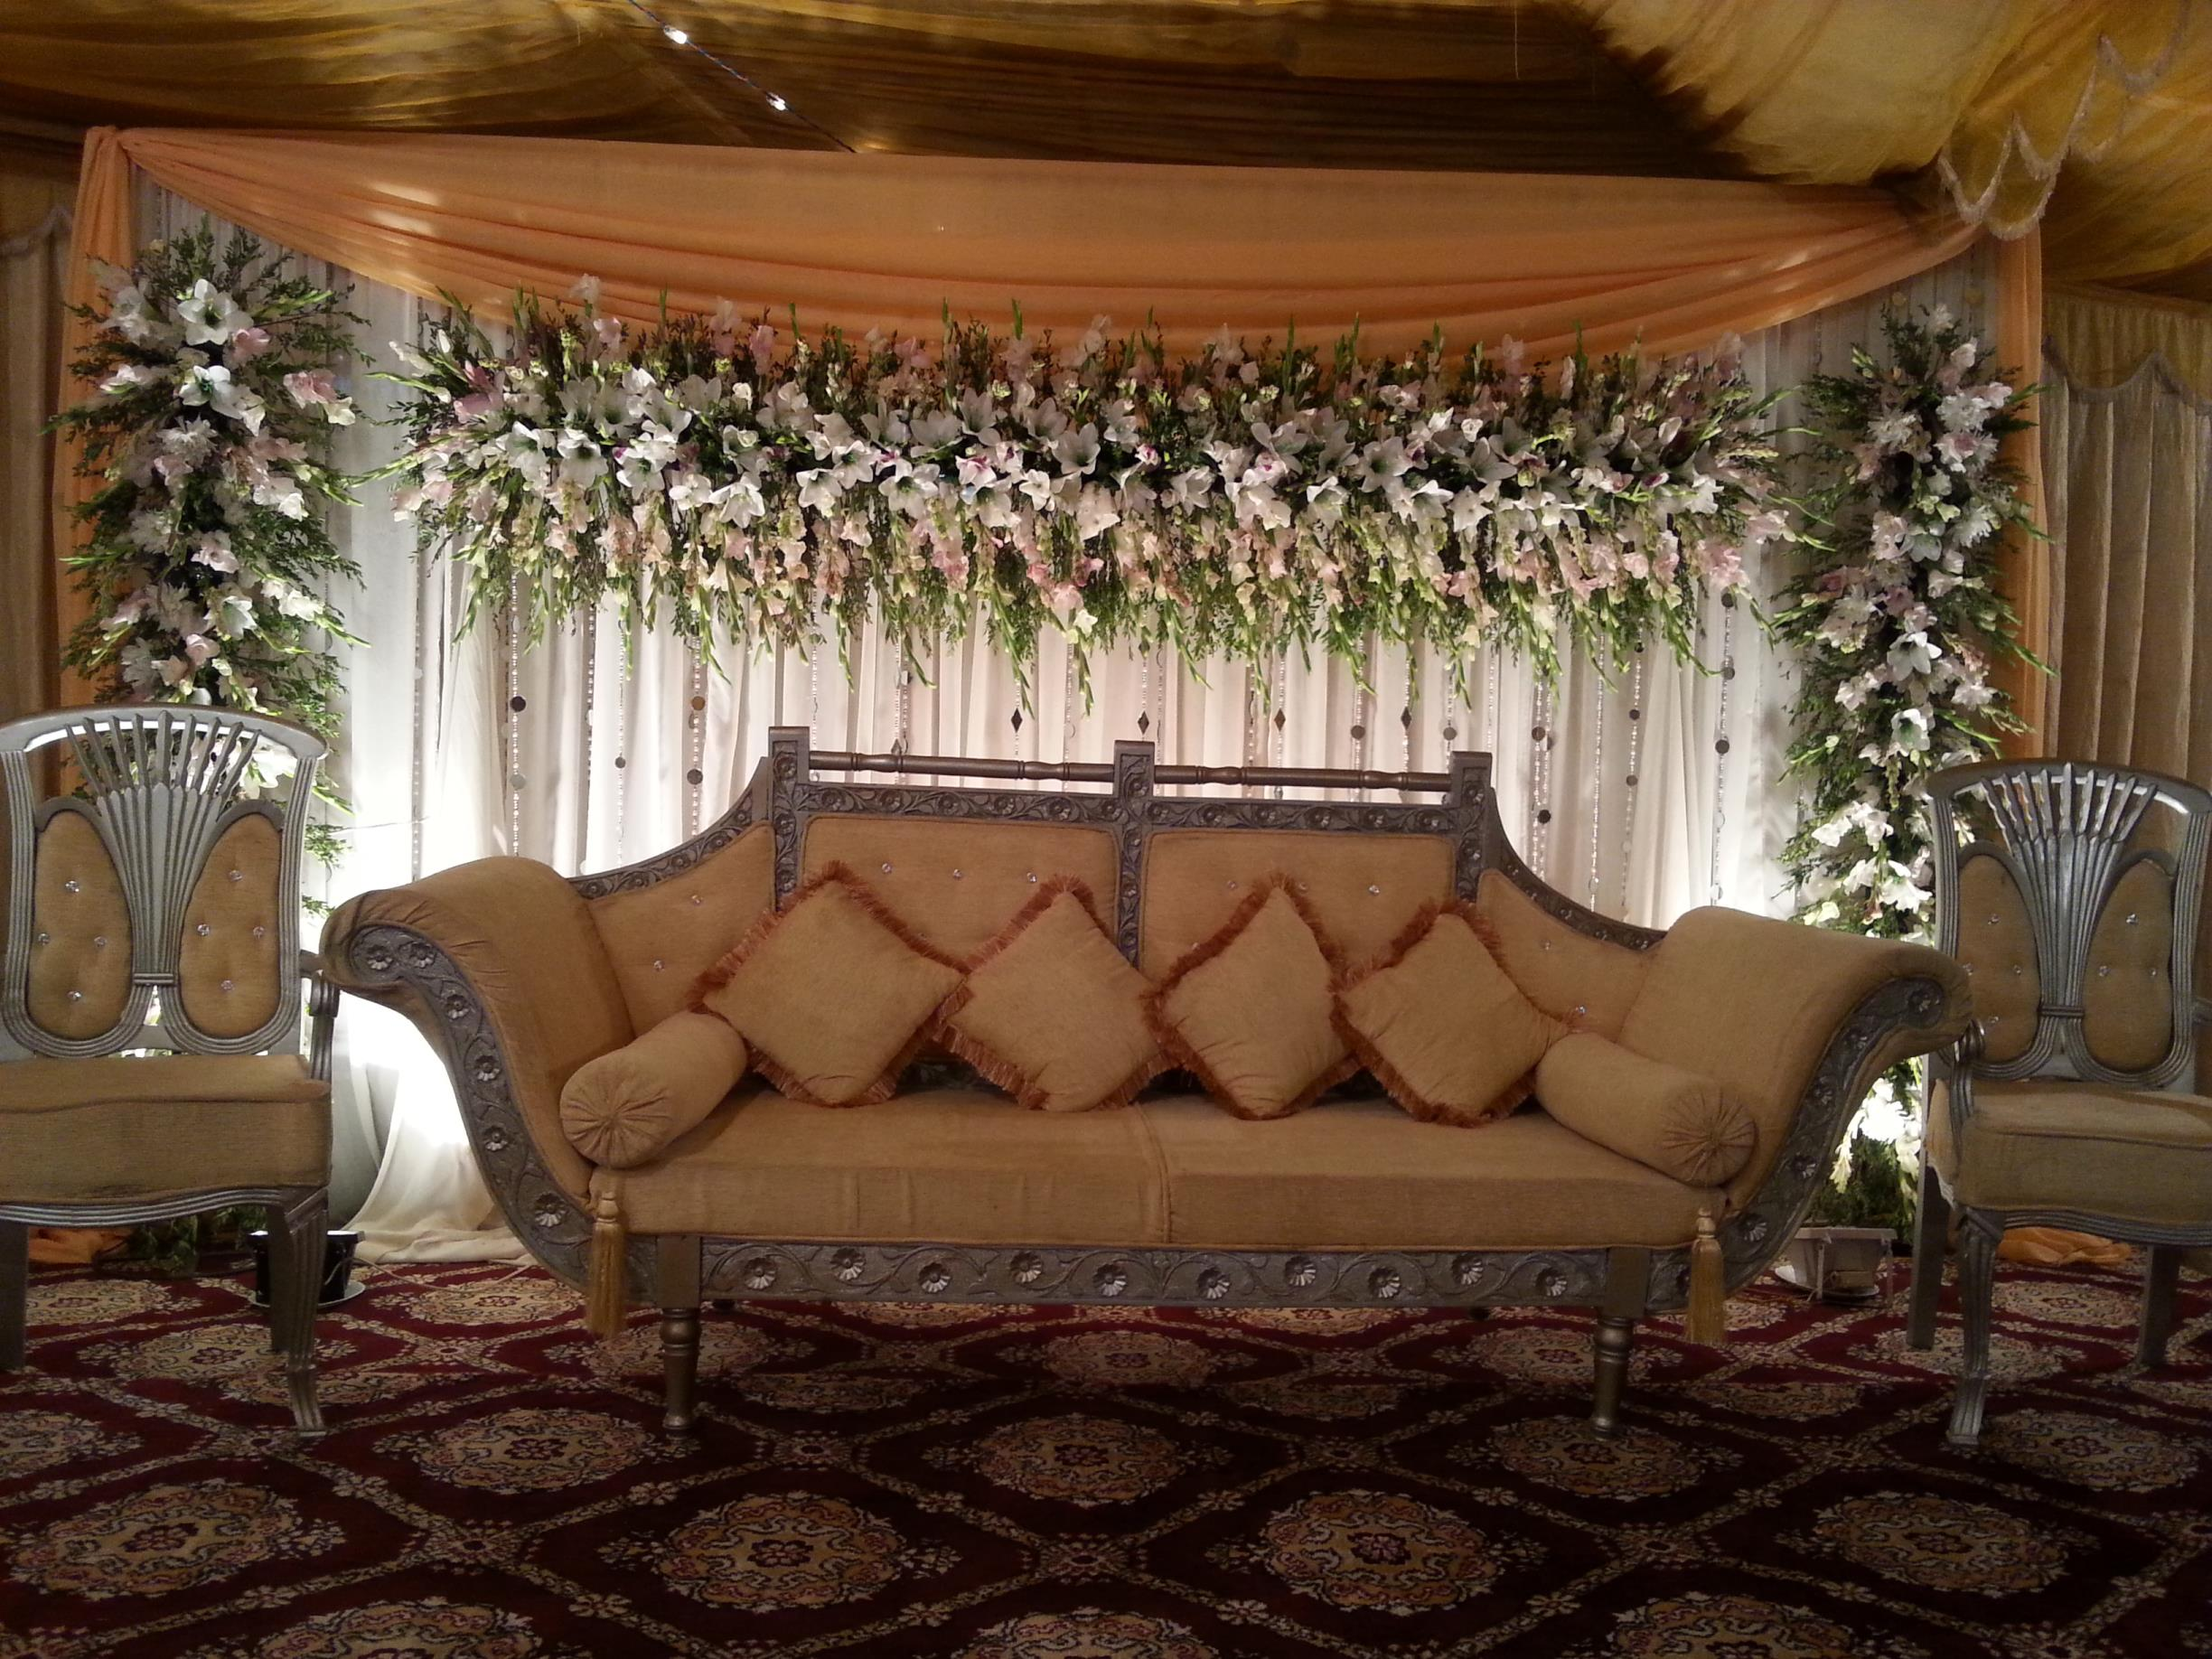 Five Star Marquee, koral chowck, service road, Opposite Koral Police Station , Islamabad